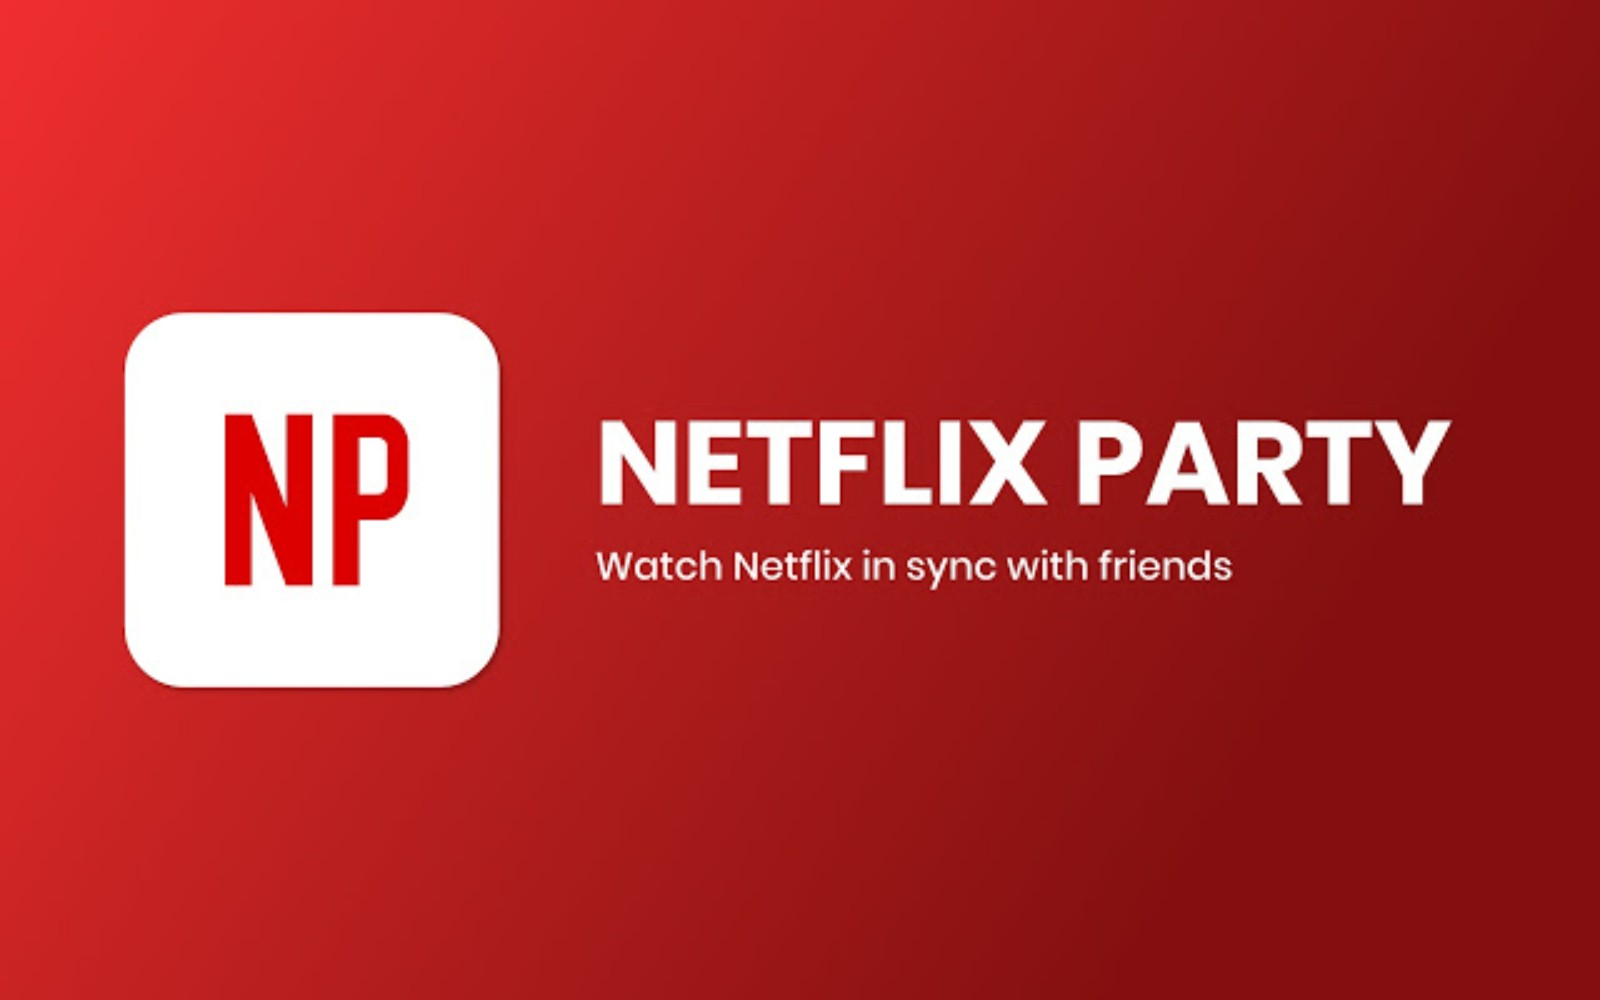 Netflix Party: Binge and chat with friends while you're stuck at home